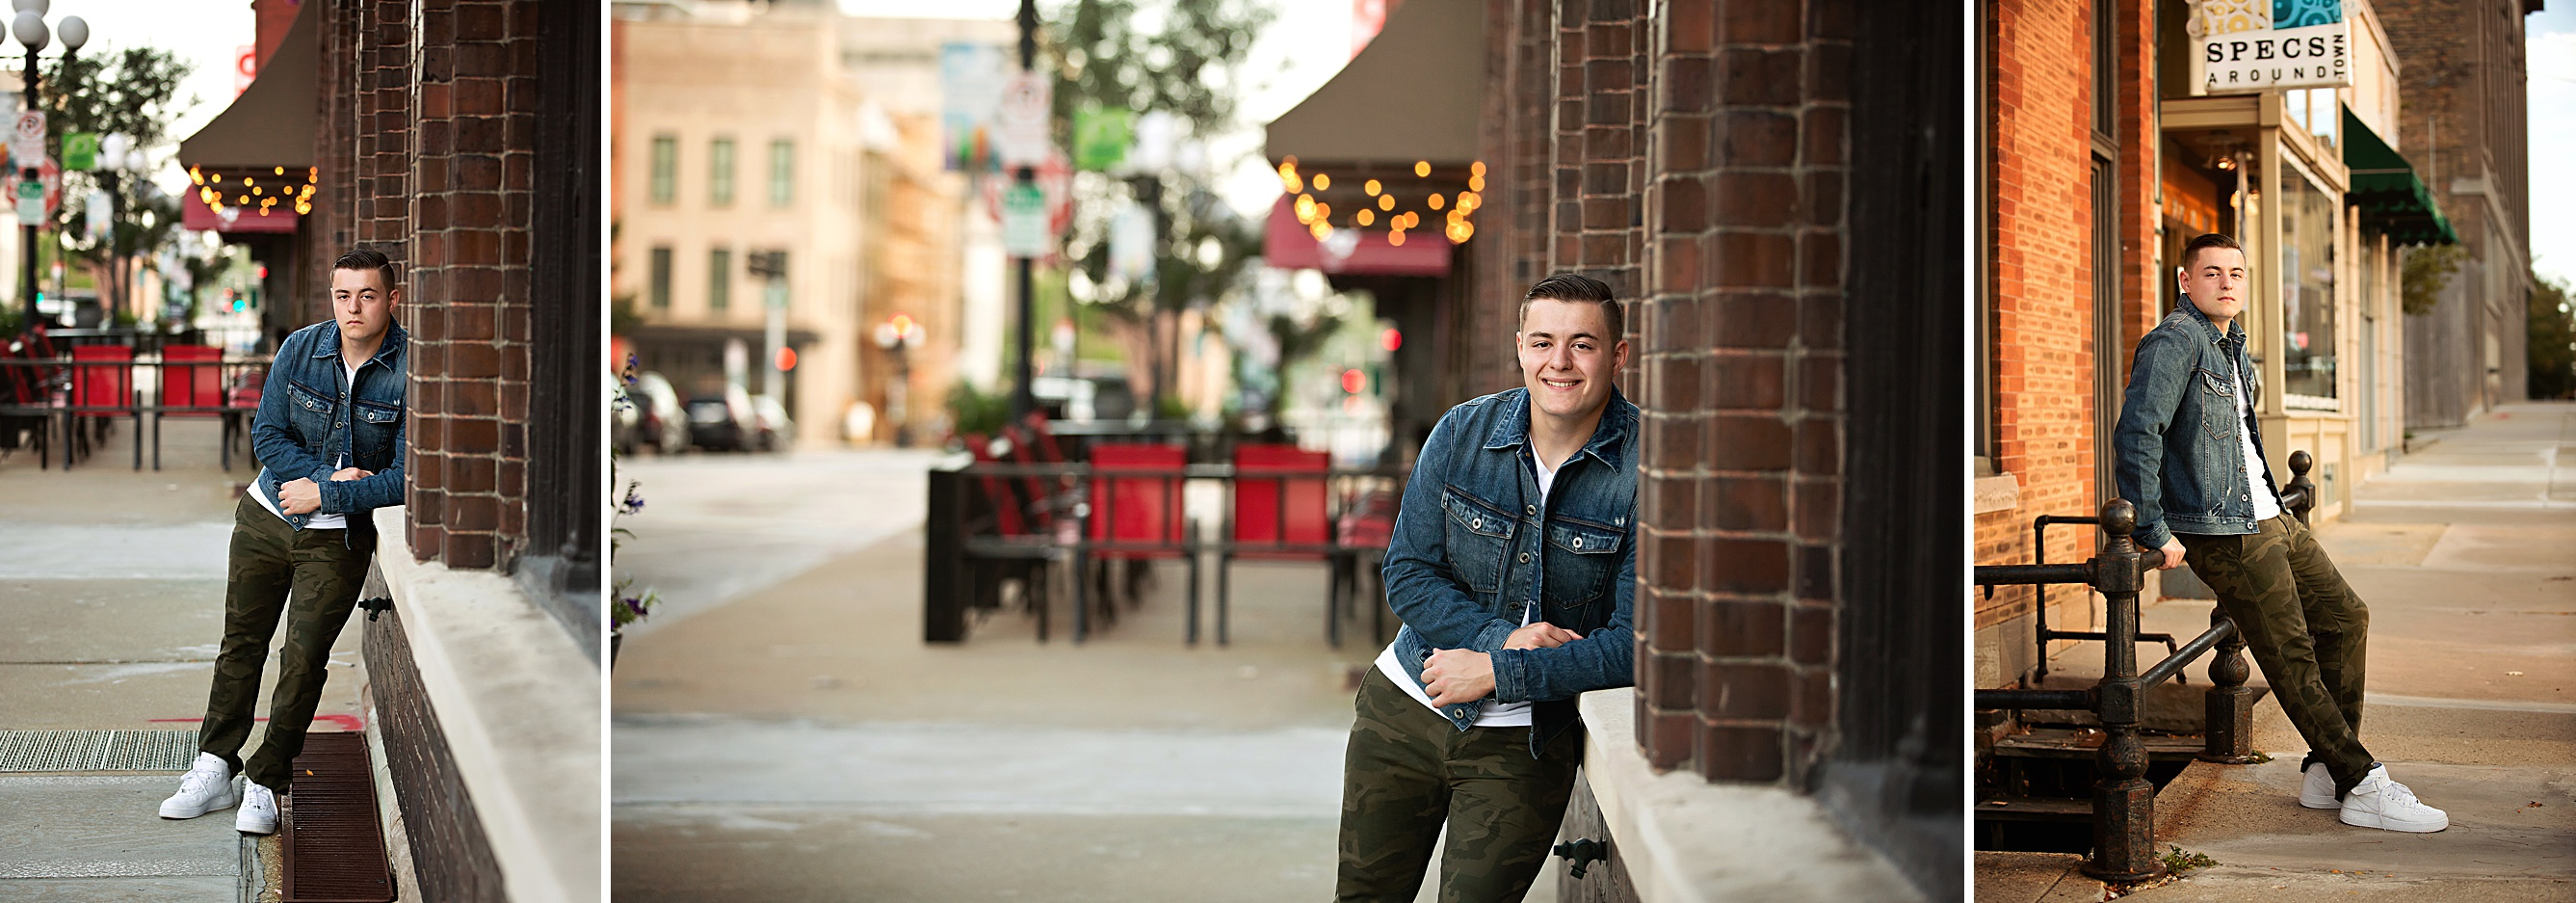 Normal IL Community High School Senior Photographer | Chandi Kesler_0087.jpg